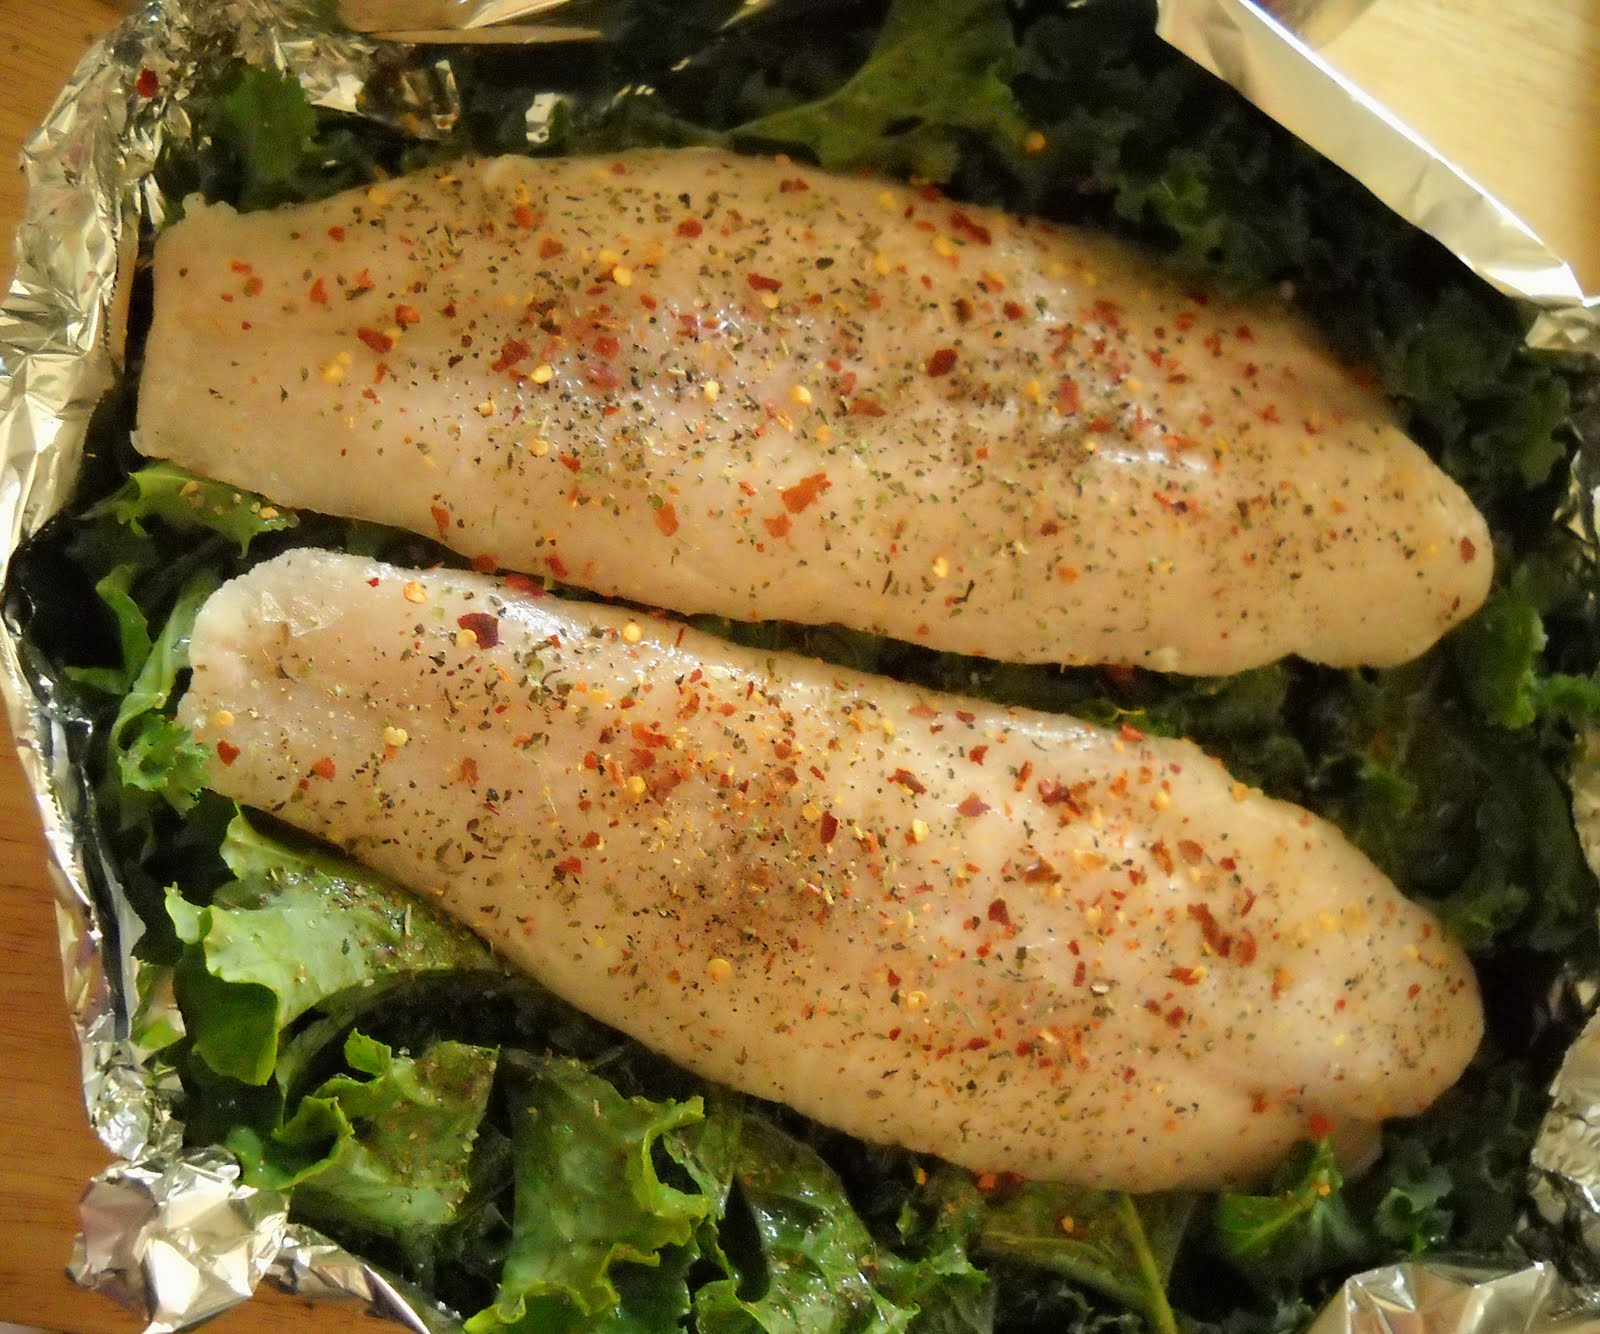 Life Food And Cooking Baked White Fish With Kale